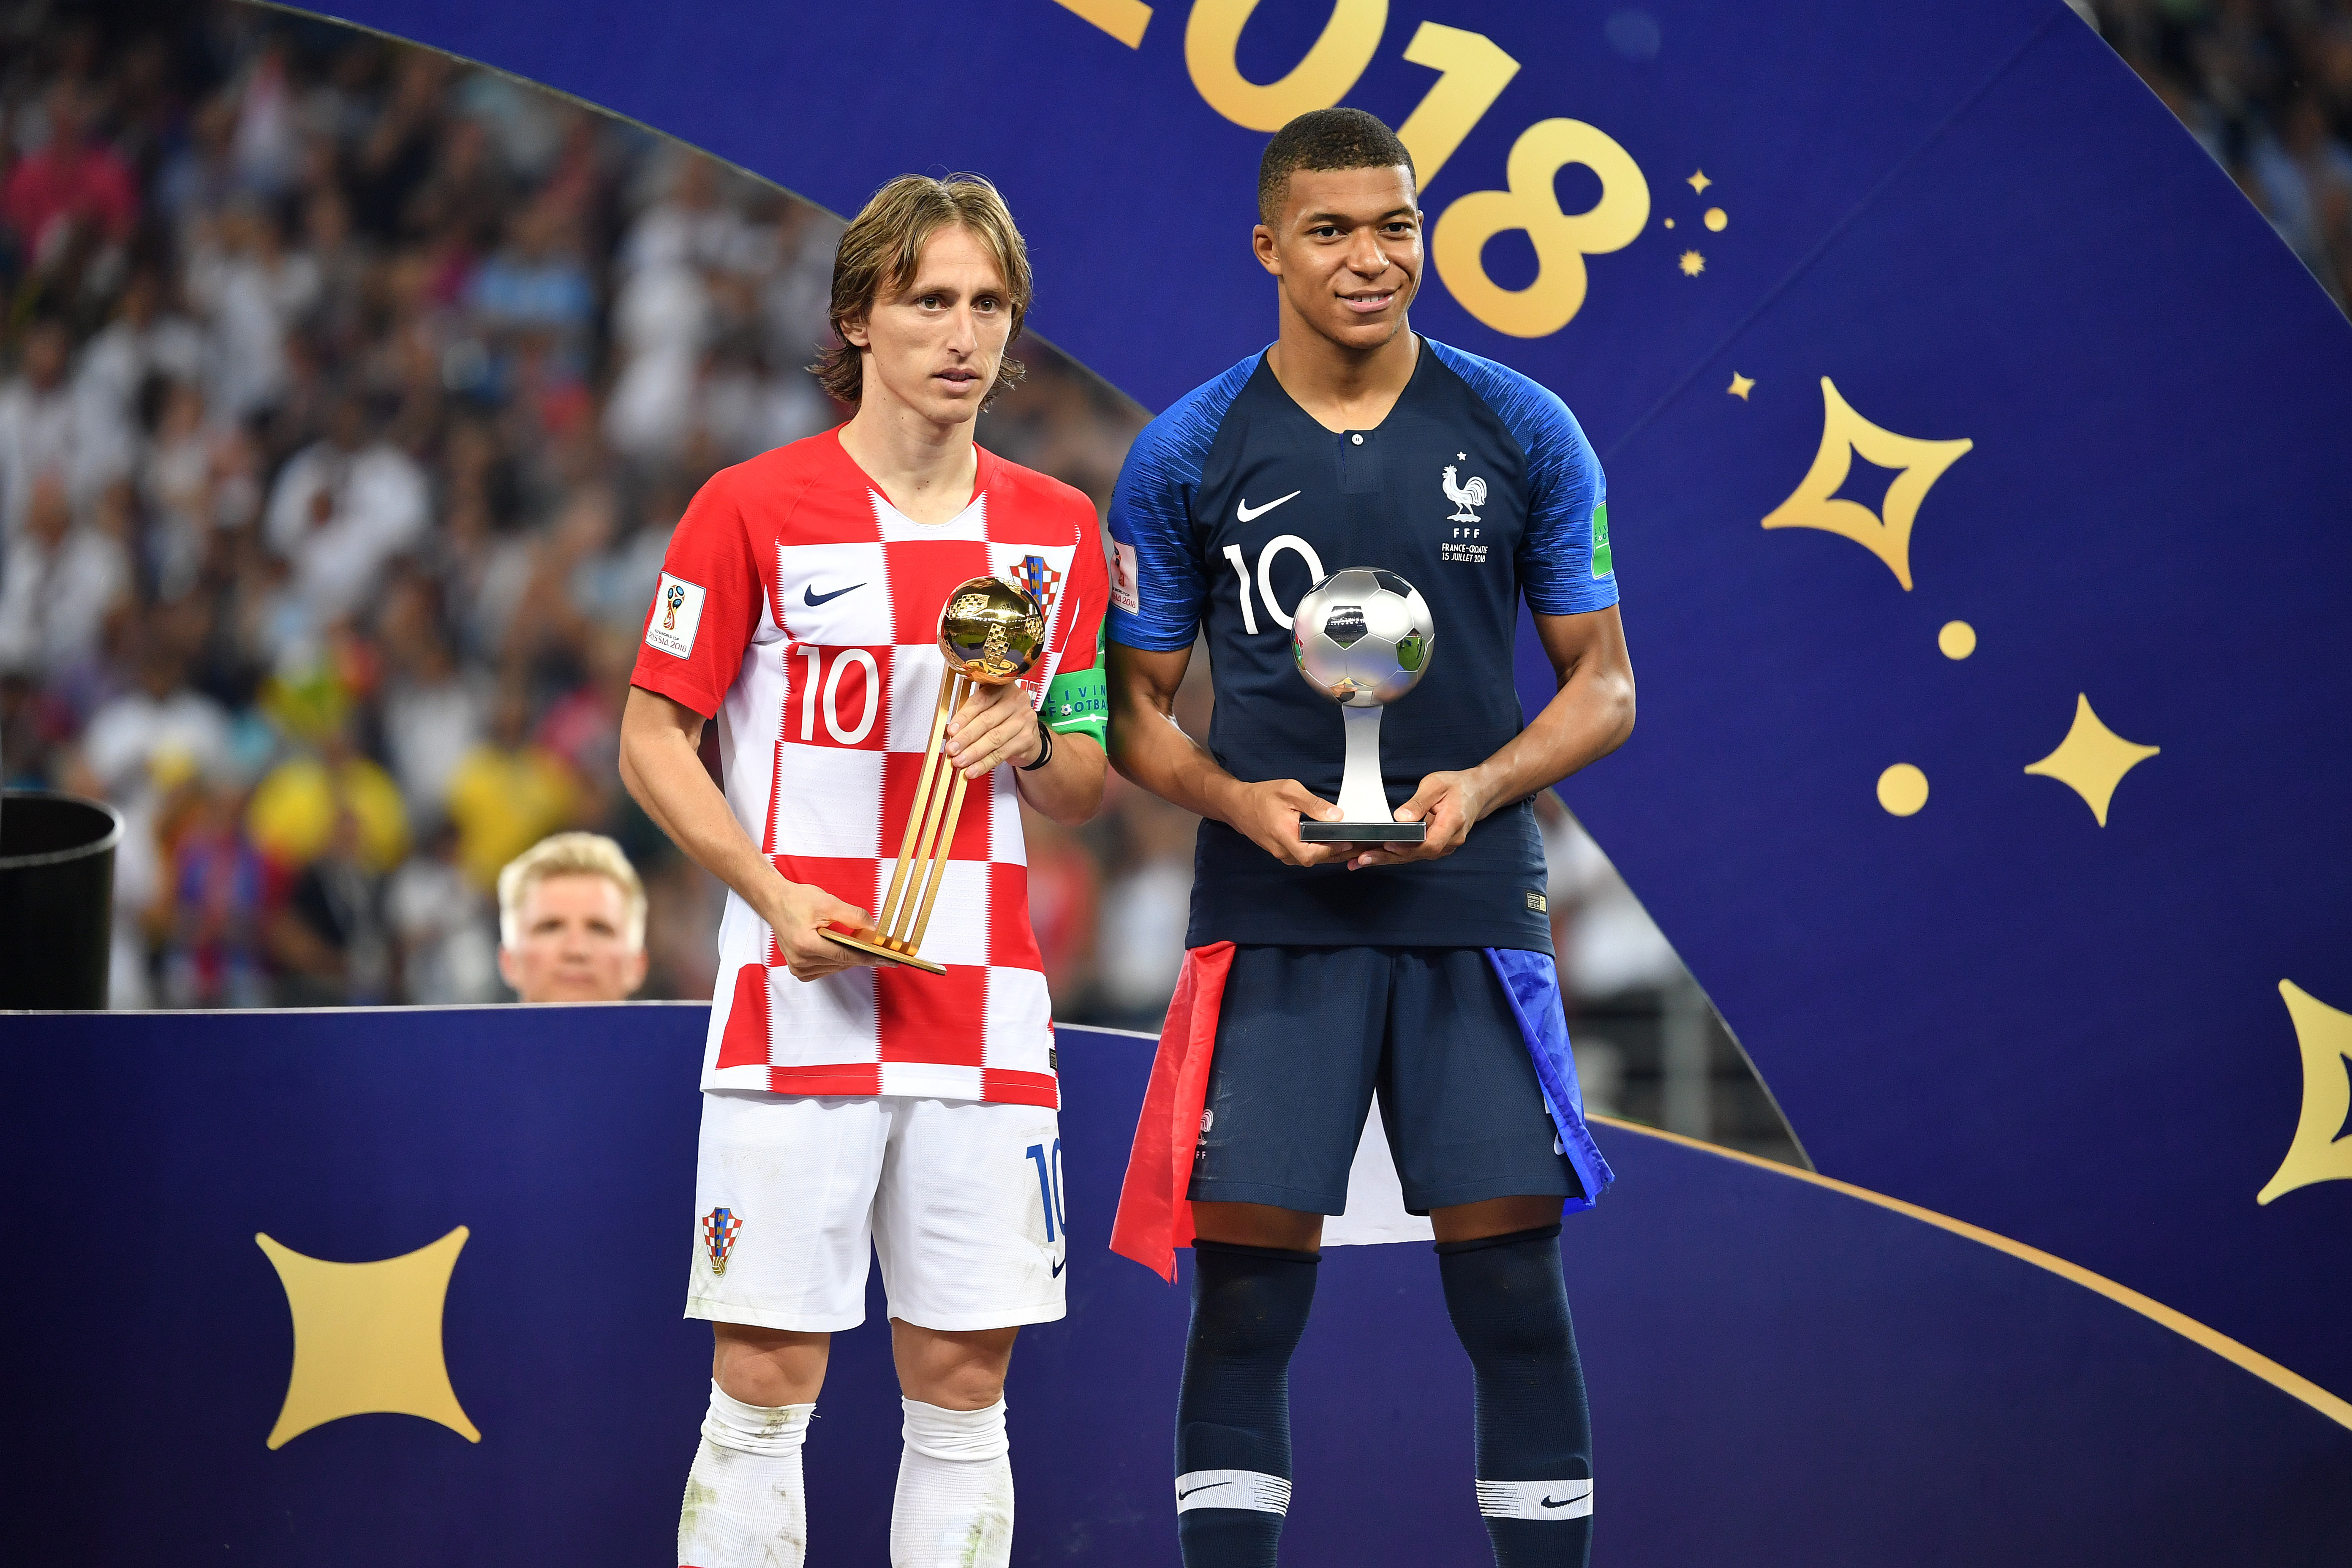 Modric won the award for the best player at the World Cup. Image: PA